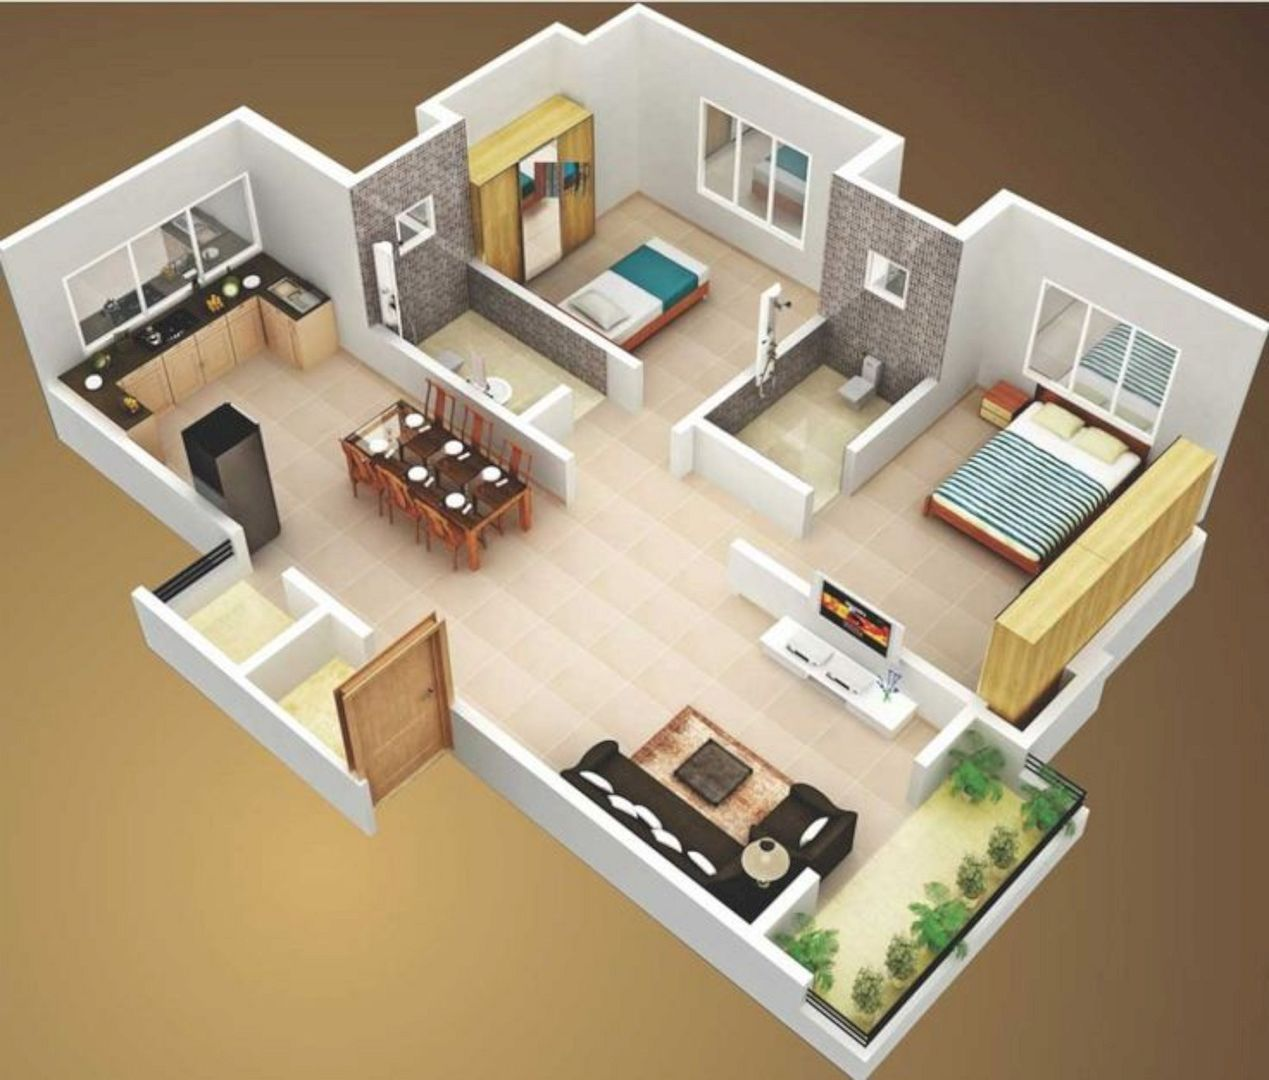 Why Do We Need 3d House Plan Before Starting The Project Small Modern House Plans 2 Bedroom House Design 3d House Plans